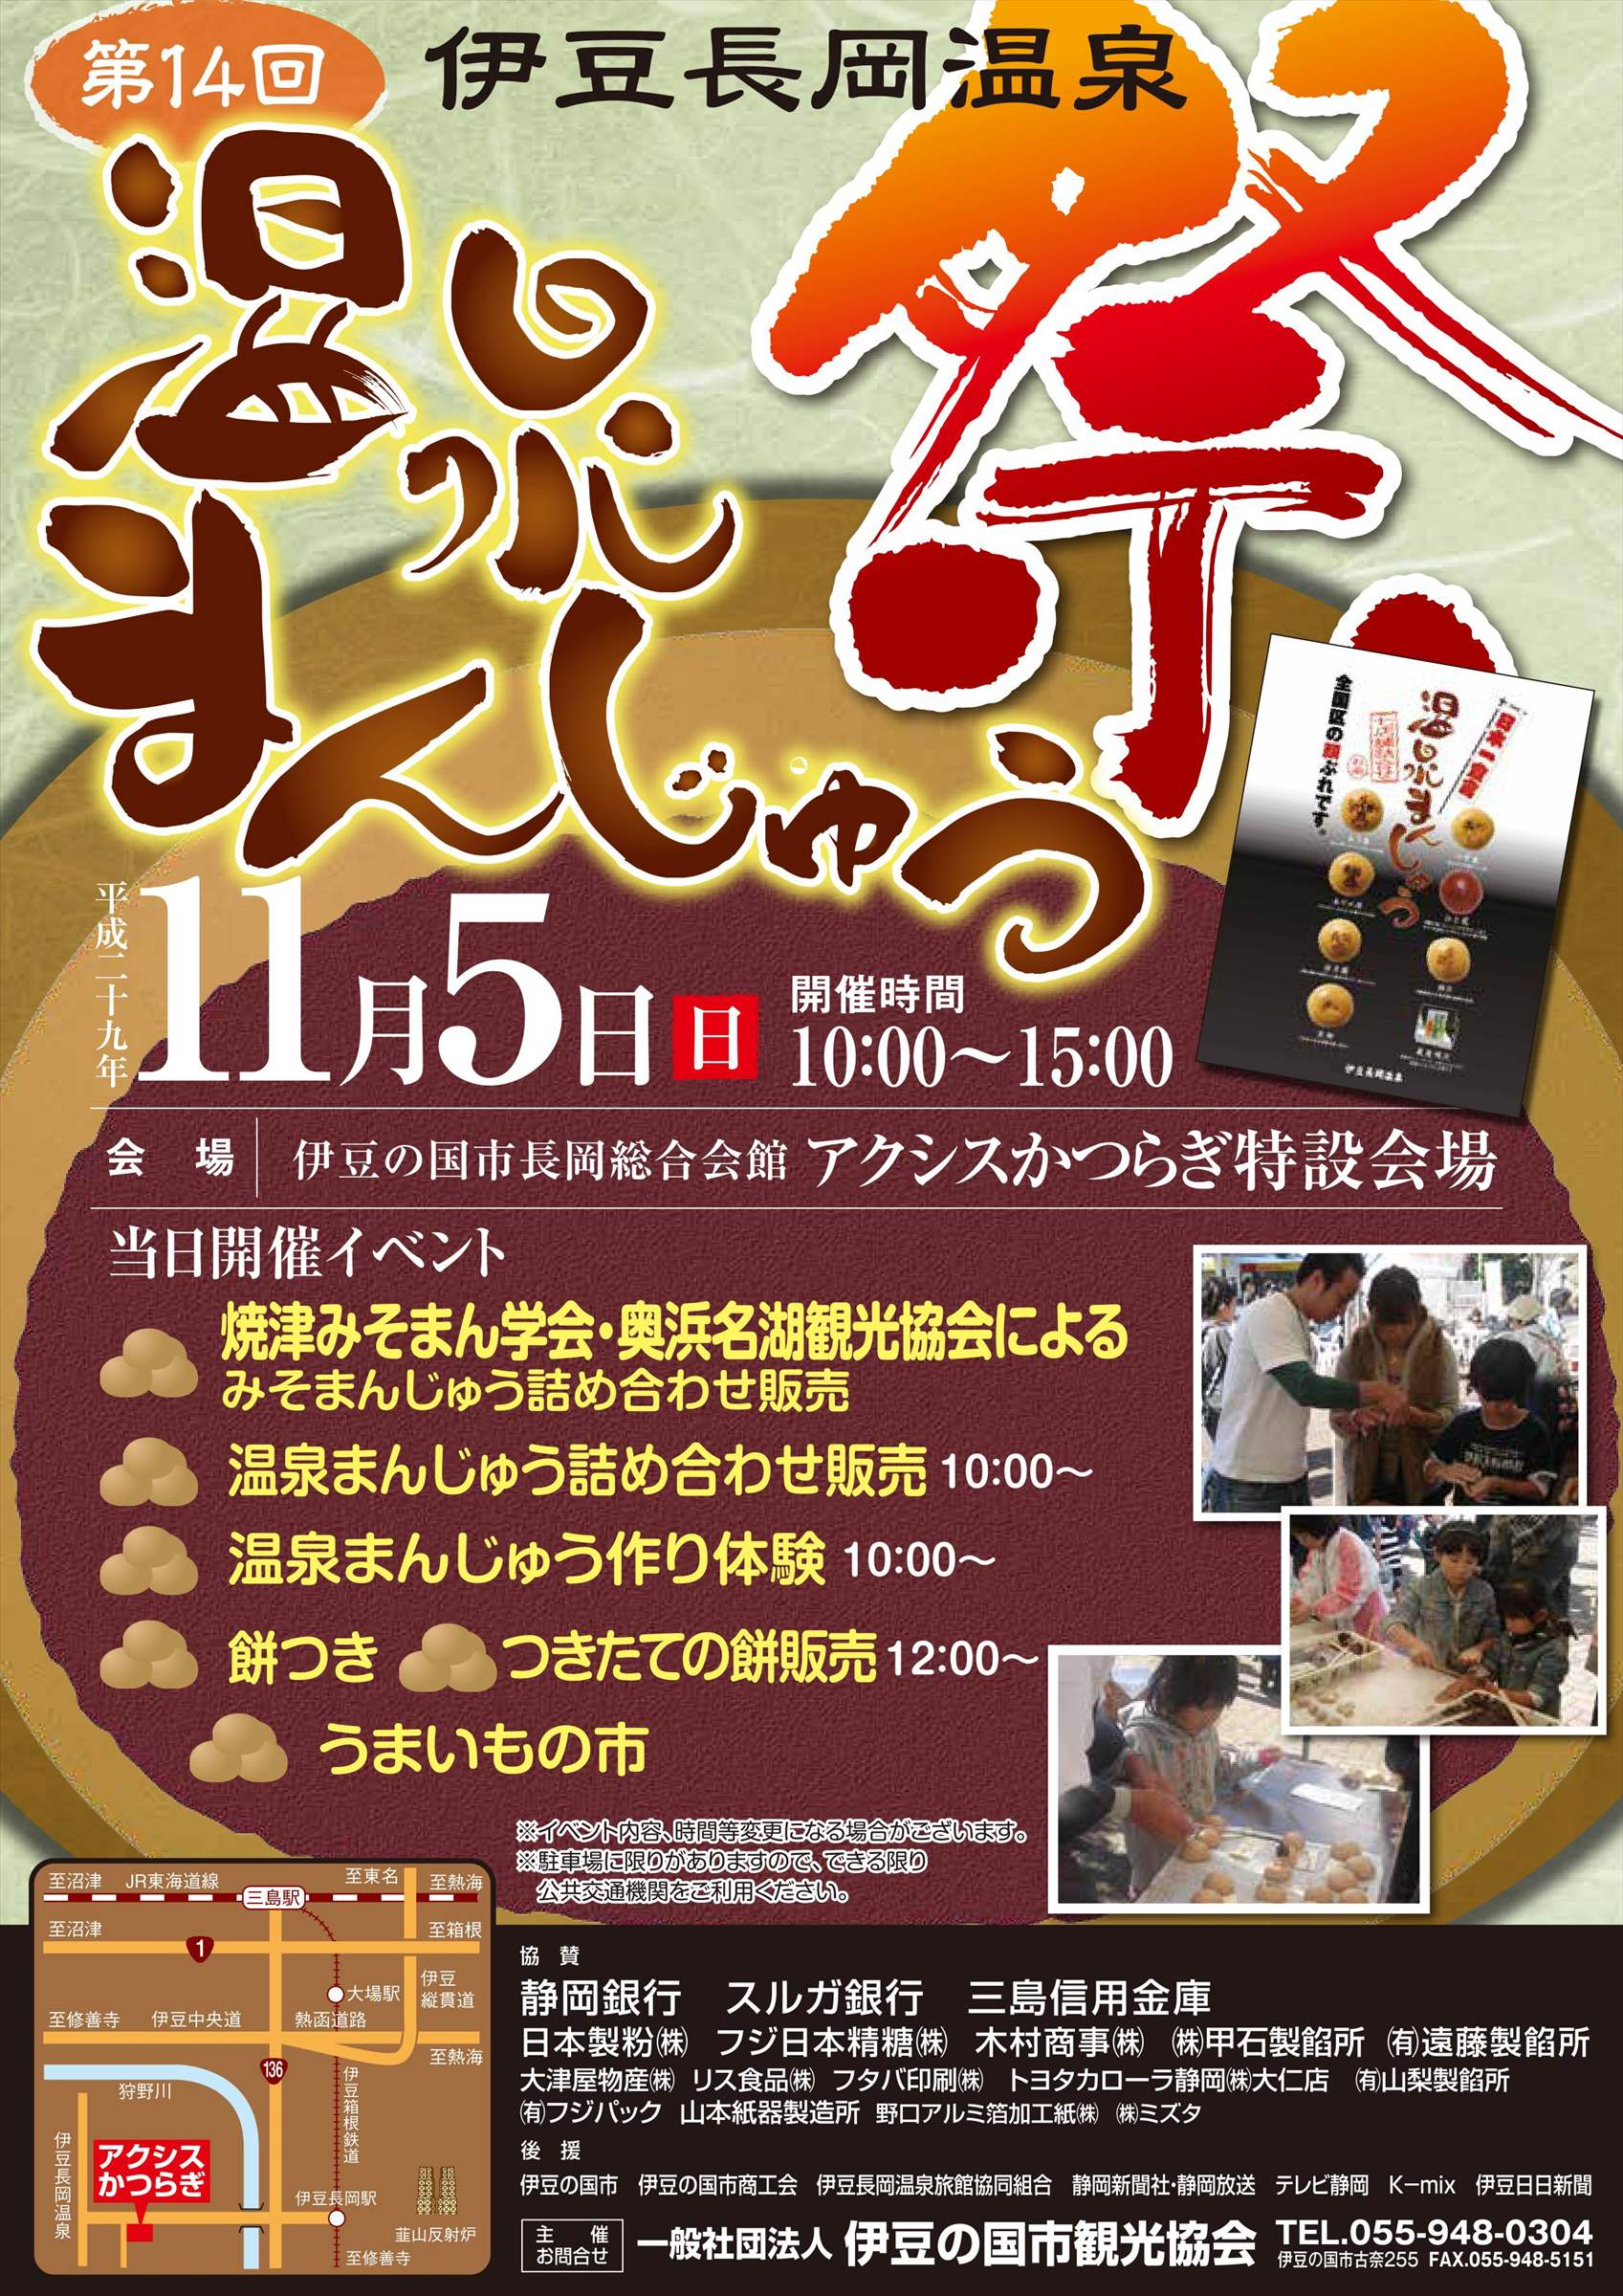 align:none link:0 alt:0 11/5 Making Onsen Manju at the 14th Onsen Manju Festival!l